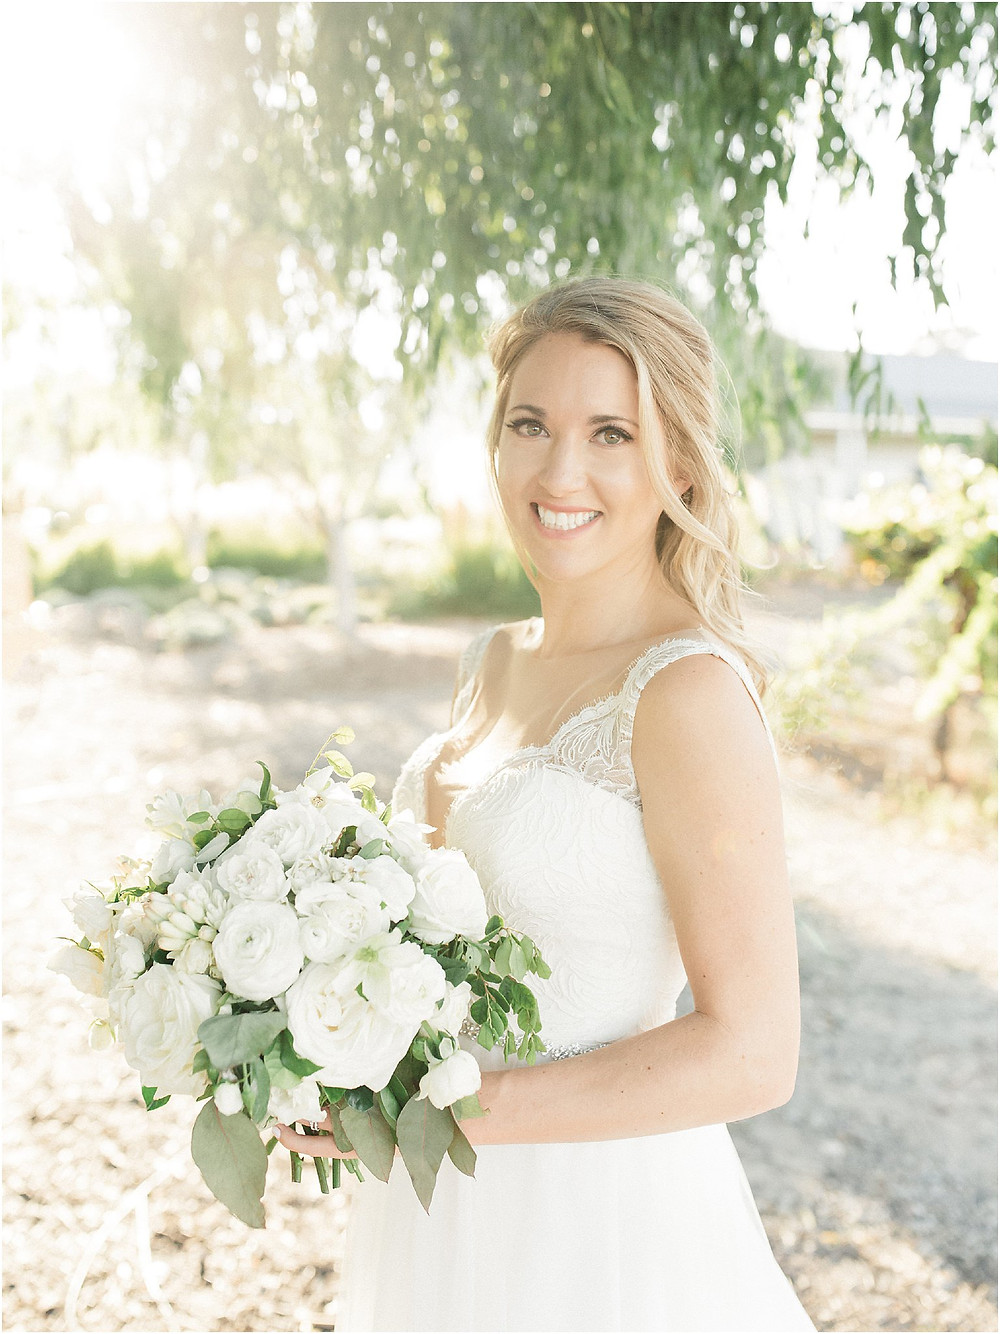 Sonoma valley wedding at Tyge William Cellars photographed by San Francisco Bay Area fine art wedding photographer Torrey Fox